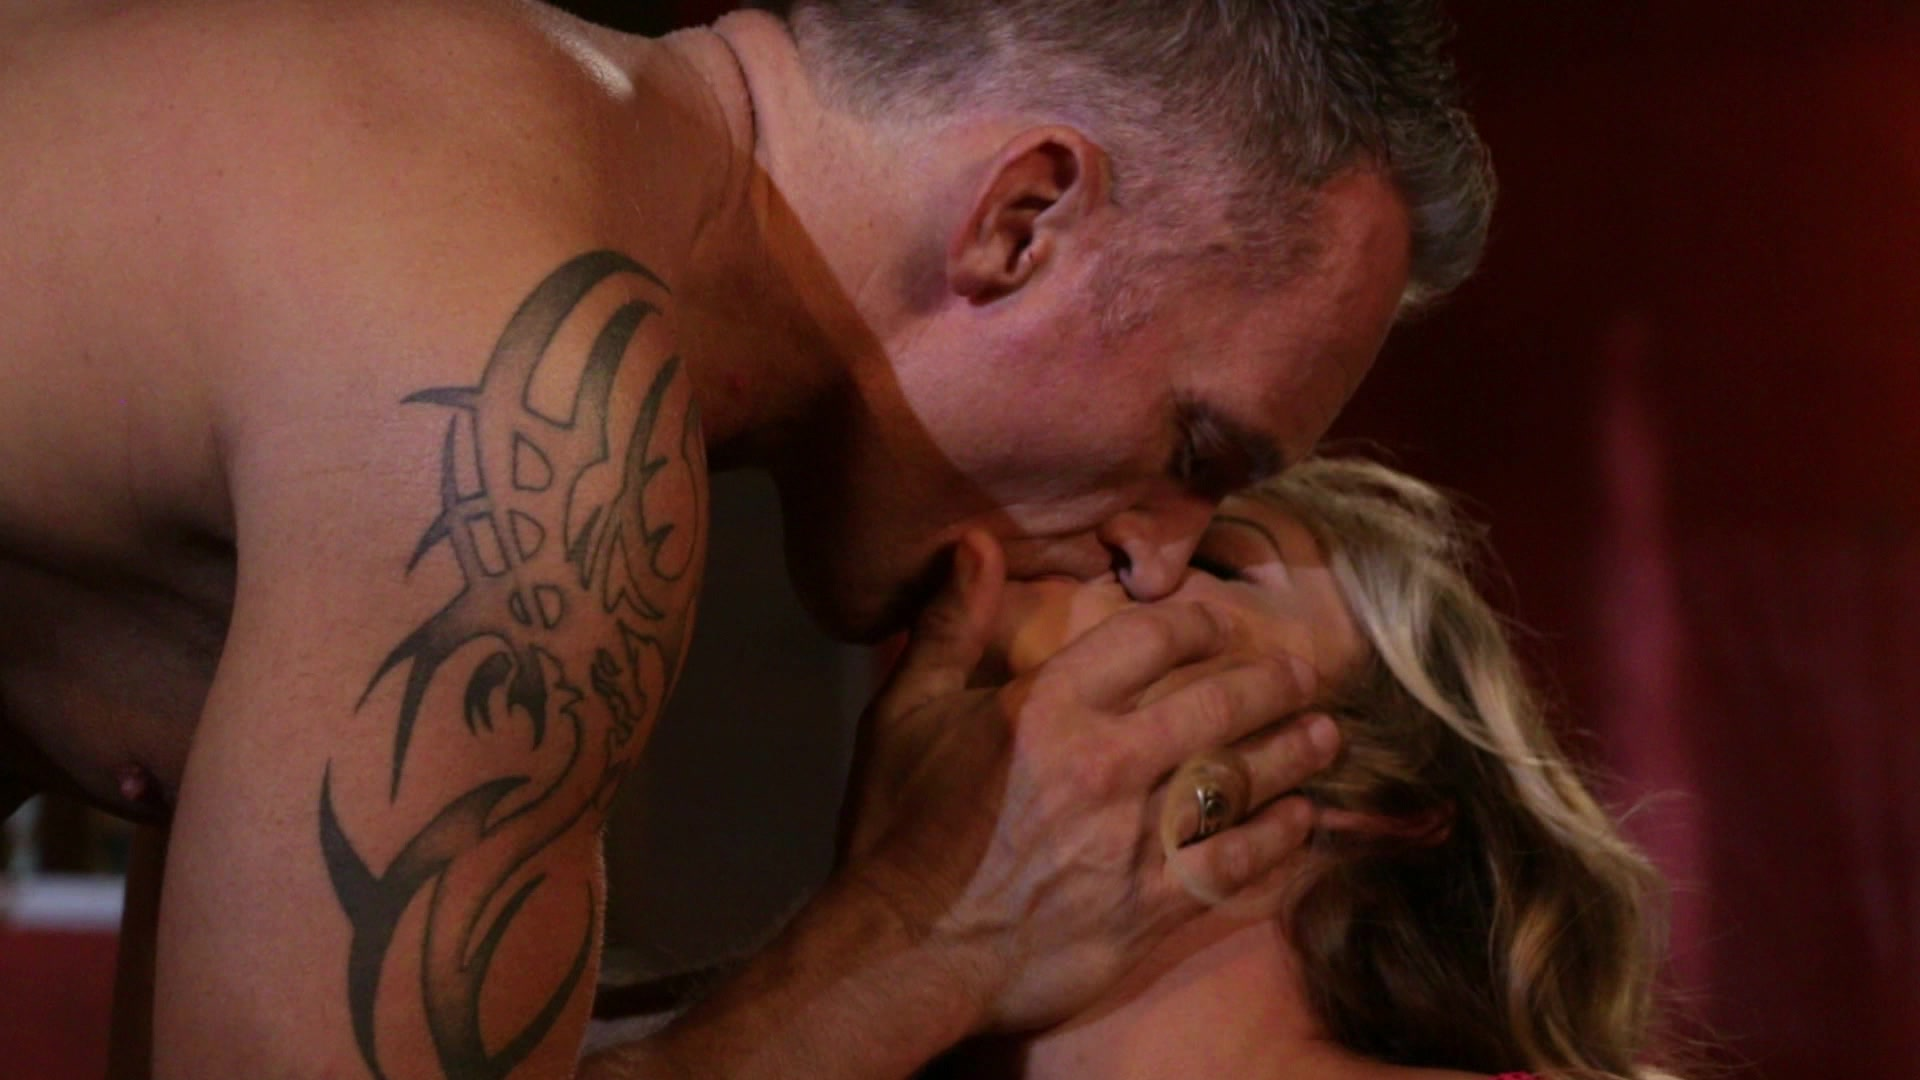 Scene with Stormy Daniels - image 18 out of 20